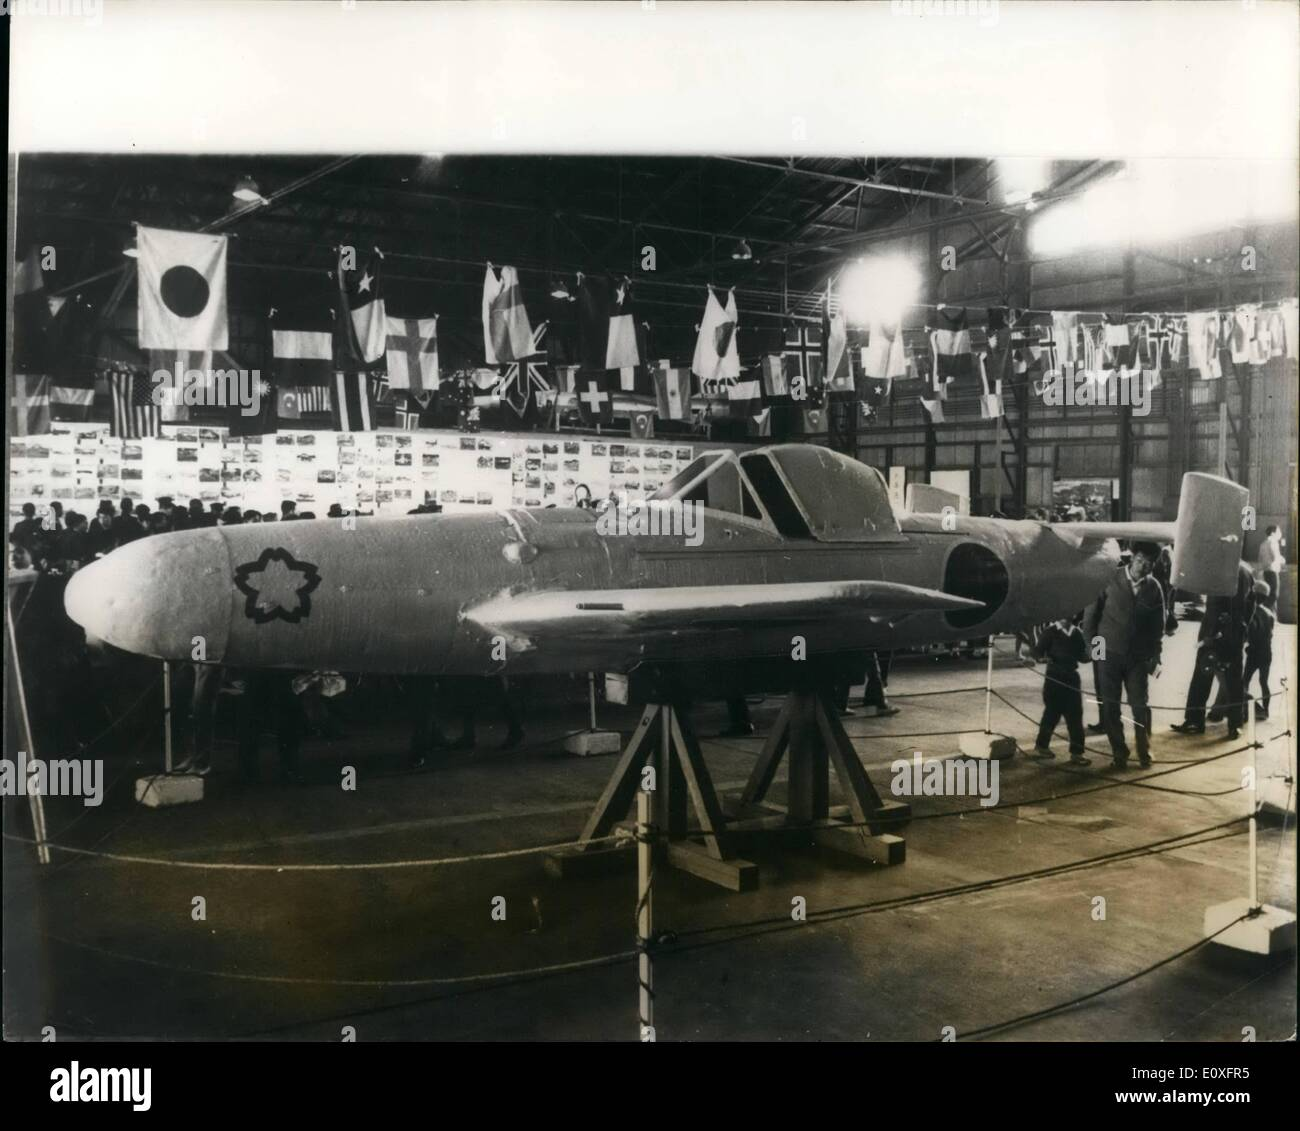 Nov. 11, 1966 - Japanese ''Human Bomb'' Displayed: An ''Oka'' ( cherry blossom ) Kamikaze glider bomb, used by the Japanese Navy during the Pacific War Tokyo, during the Japan Aeronautic Association Air Show The ''human bomb'' was carried to its target suspended beneath a bomber and released, to be guided onto its target by a suicide pilot seated in its cookpit. After trials in 1944, 800 were produced, but only eight attacks were made with them. After the war ended 50 of them were found undamaged. The Kamikaze human bombs were 5 metres wide, 6.06 meter long, and weighed 2.3 tons including 1 - Stock Image